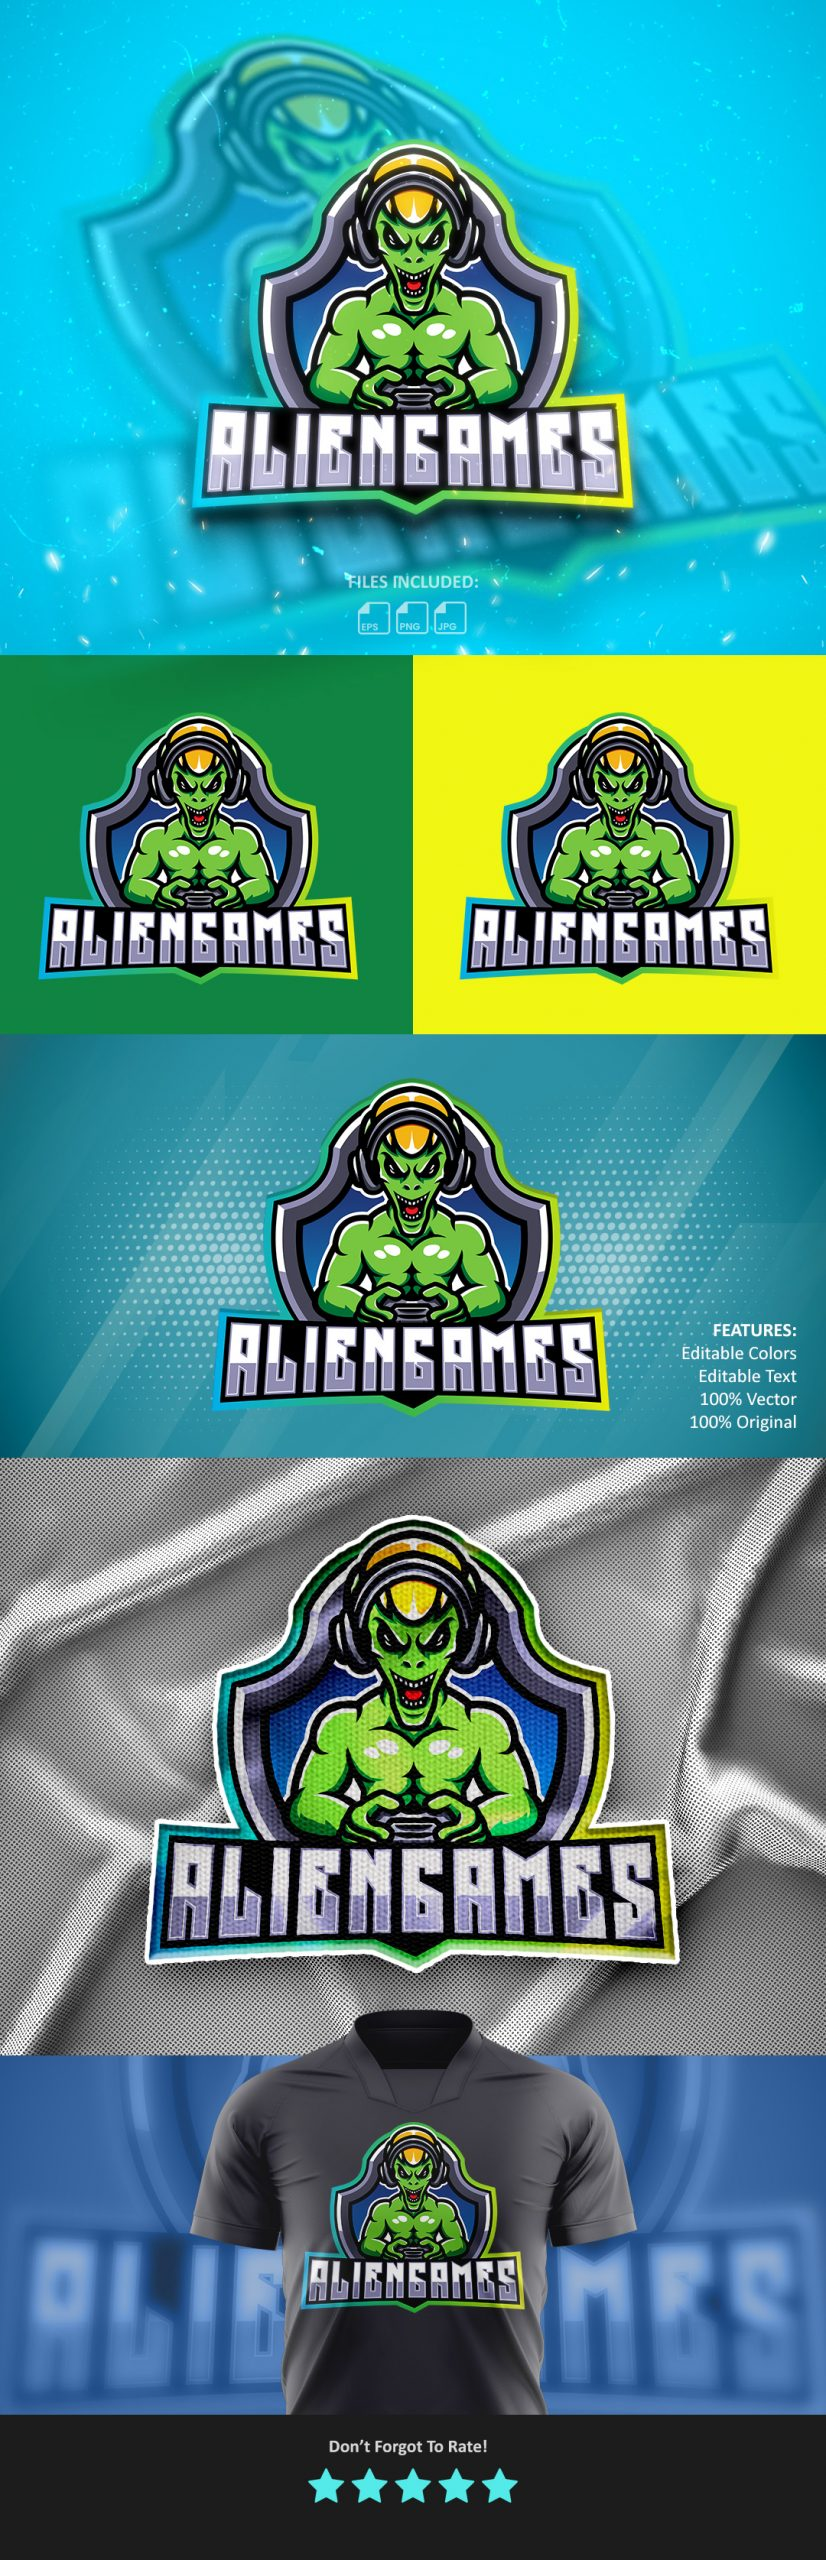 Free Download Alien Games Mascot Logo